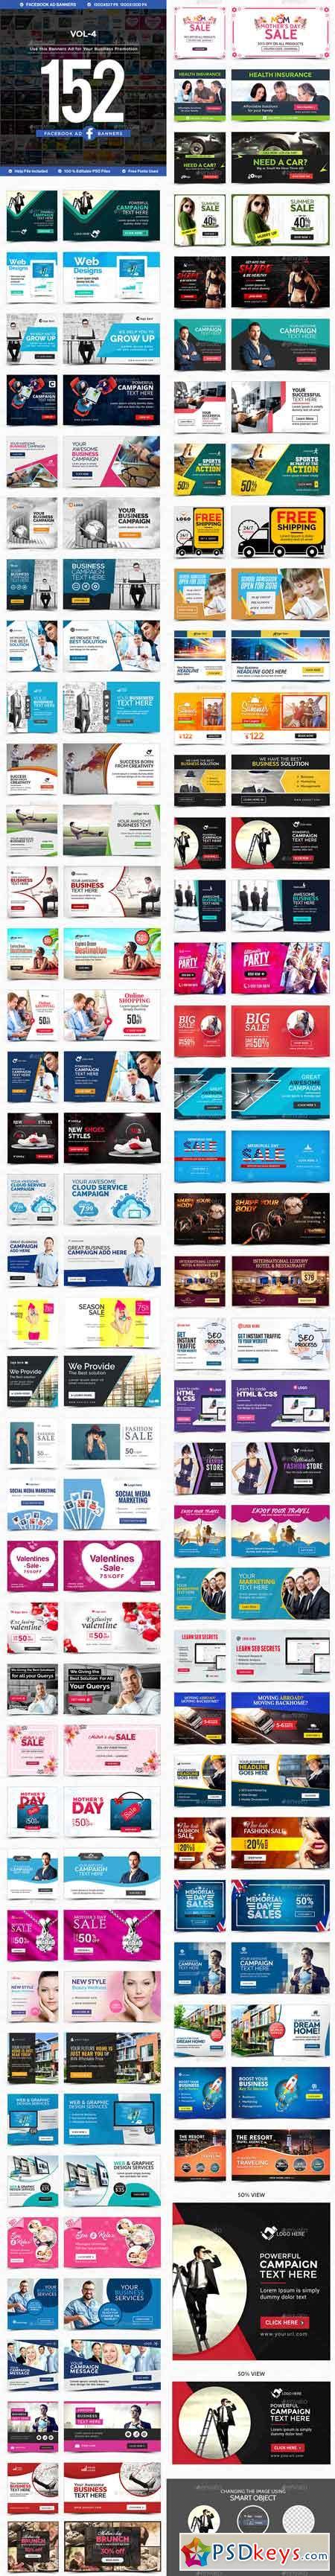 Facebook Newsfeed Ad Banners Vol-4 - 152 Banners